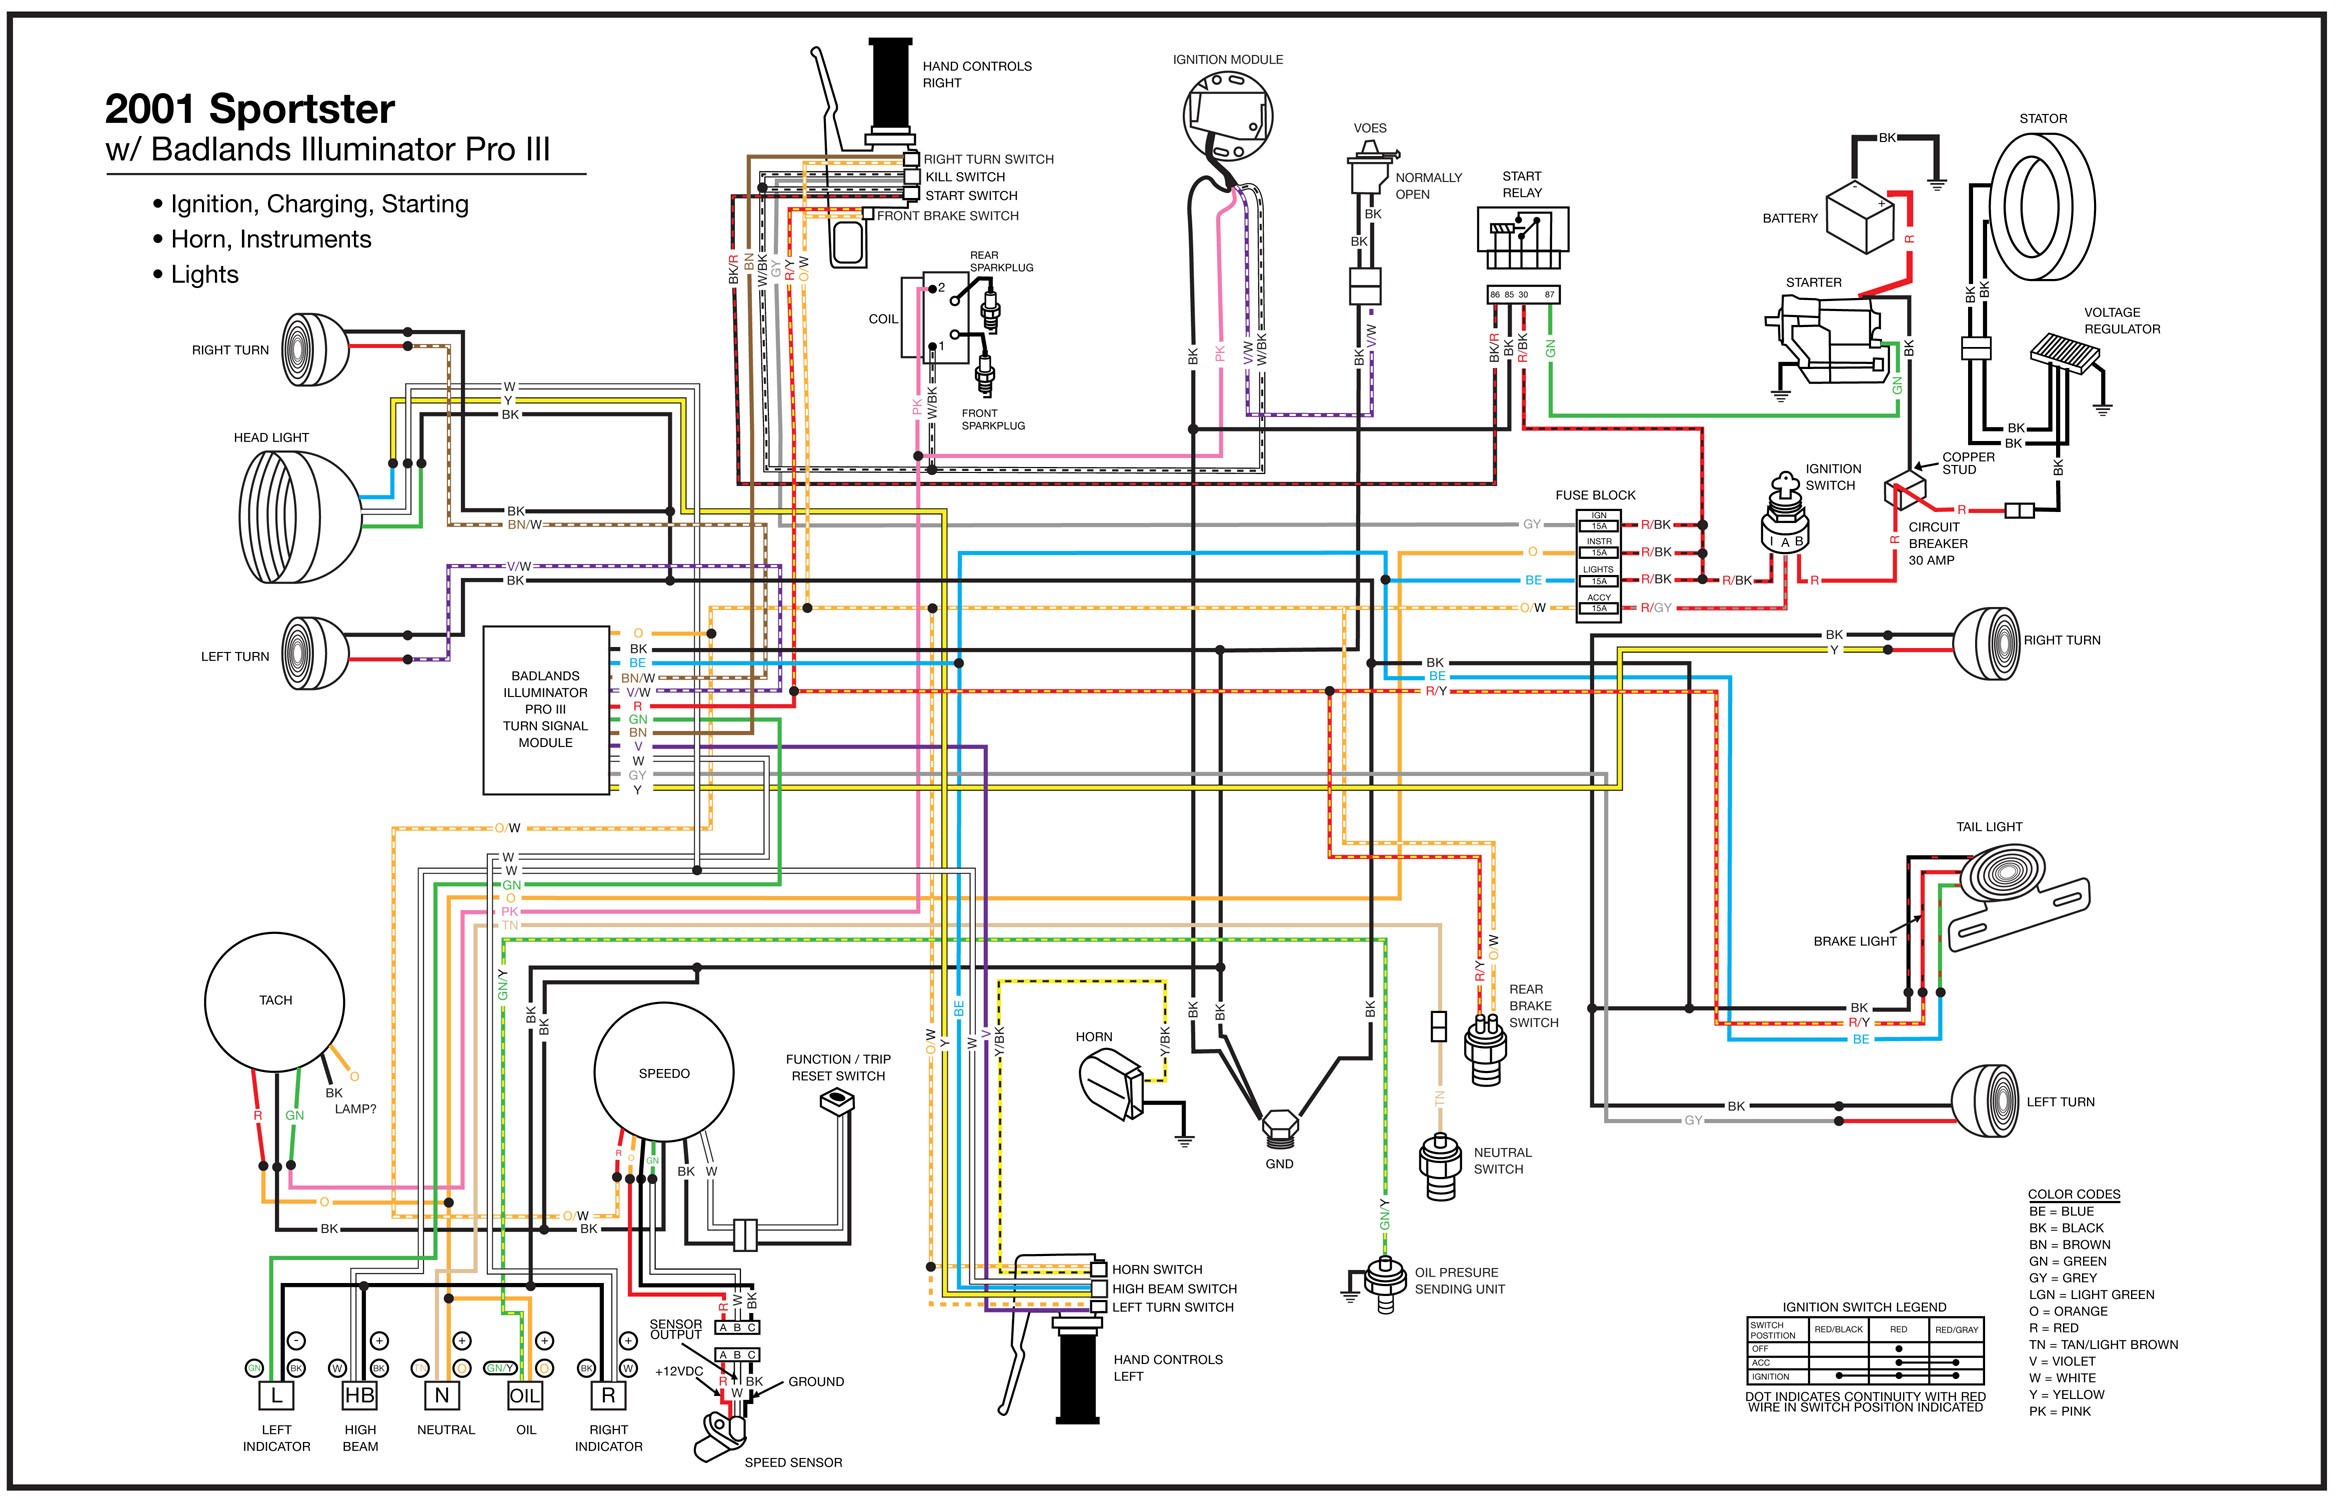 Sportster Badlands_Wiring_Diagram sportster wiring diagram wiring diagram and schematic design 1999 Sportster Wiring Diagram at fashall.co